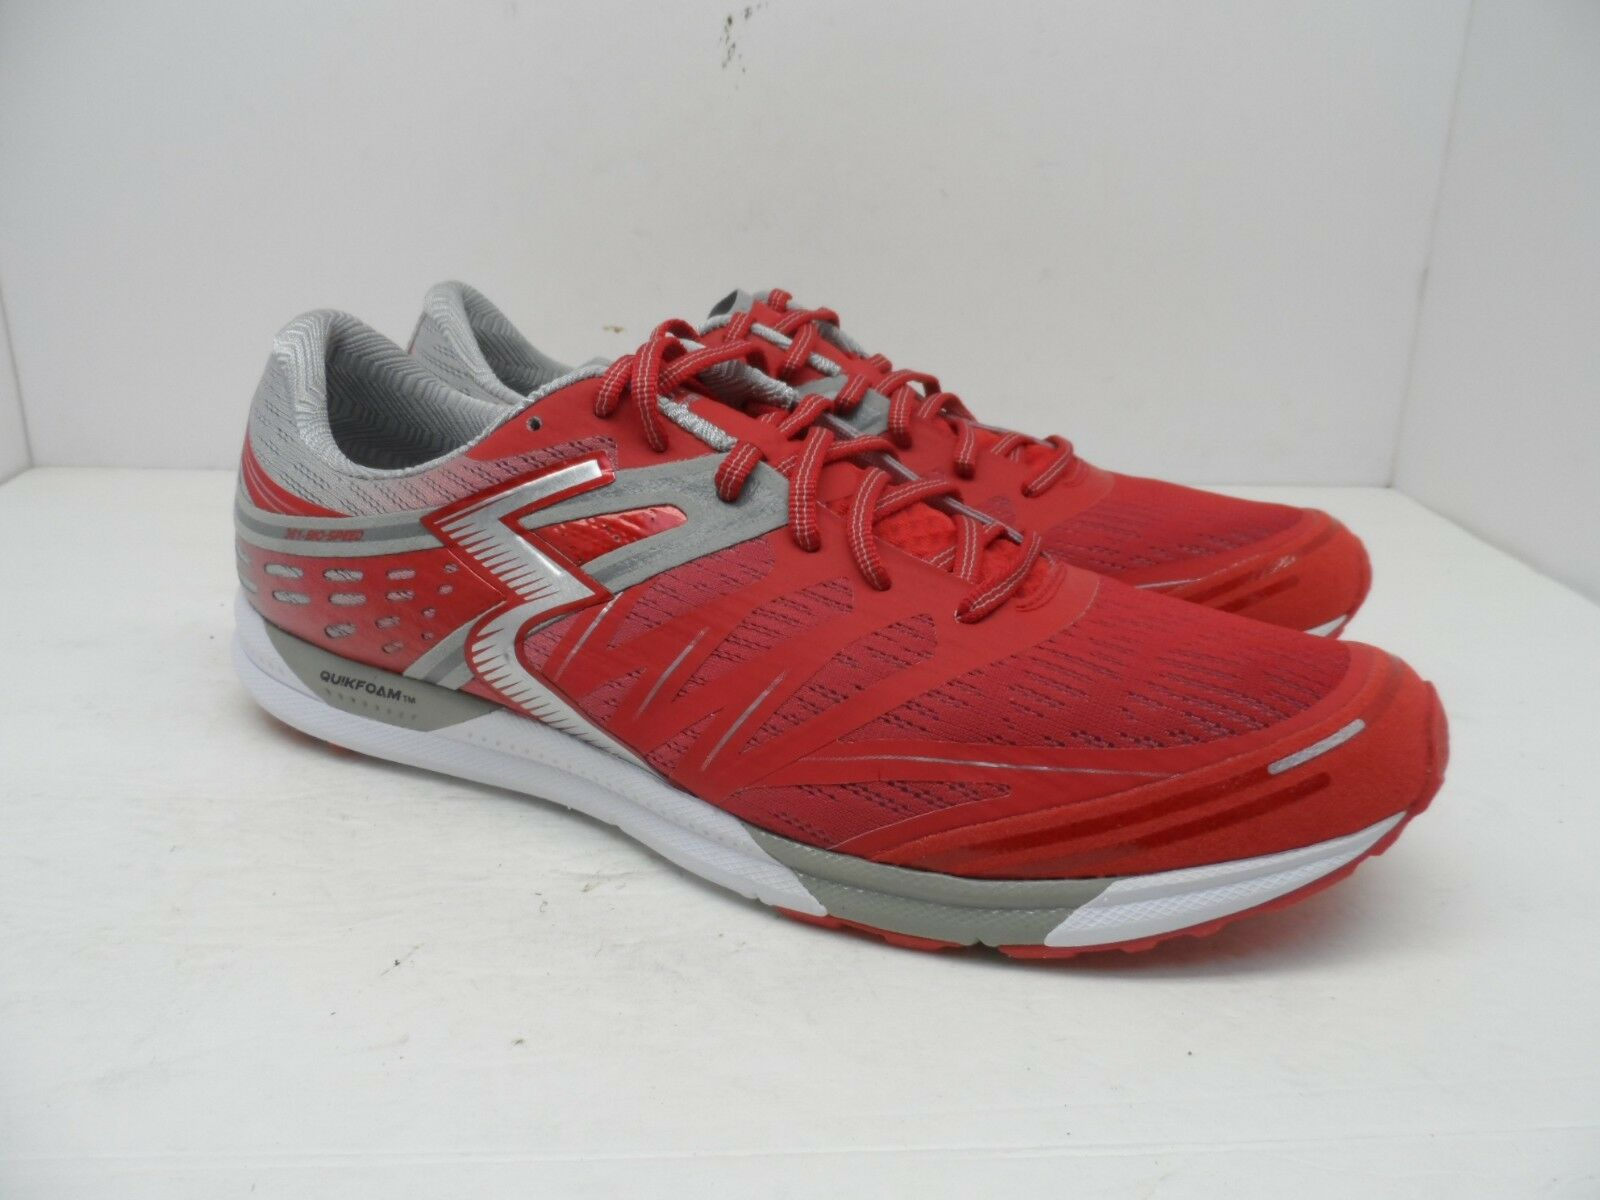 361 Degrees Men's Bio-Speed Cross Trainer Red/Silver/White Size 13M